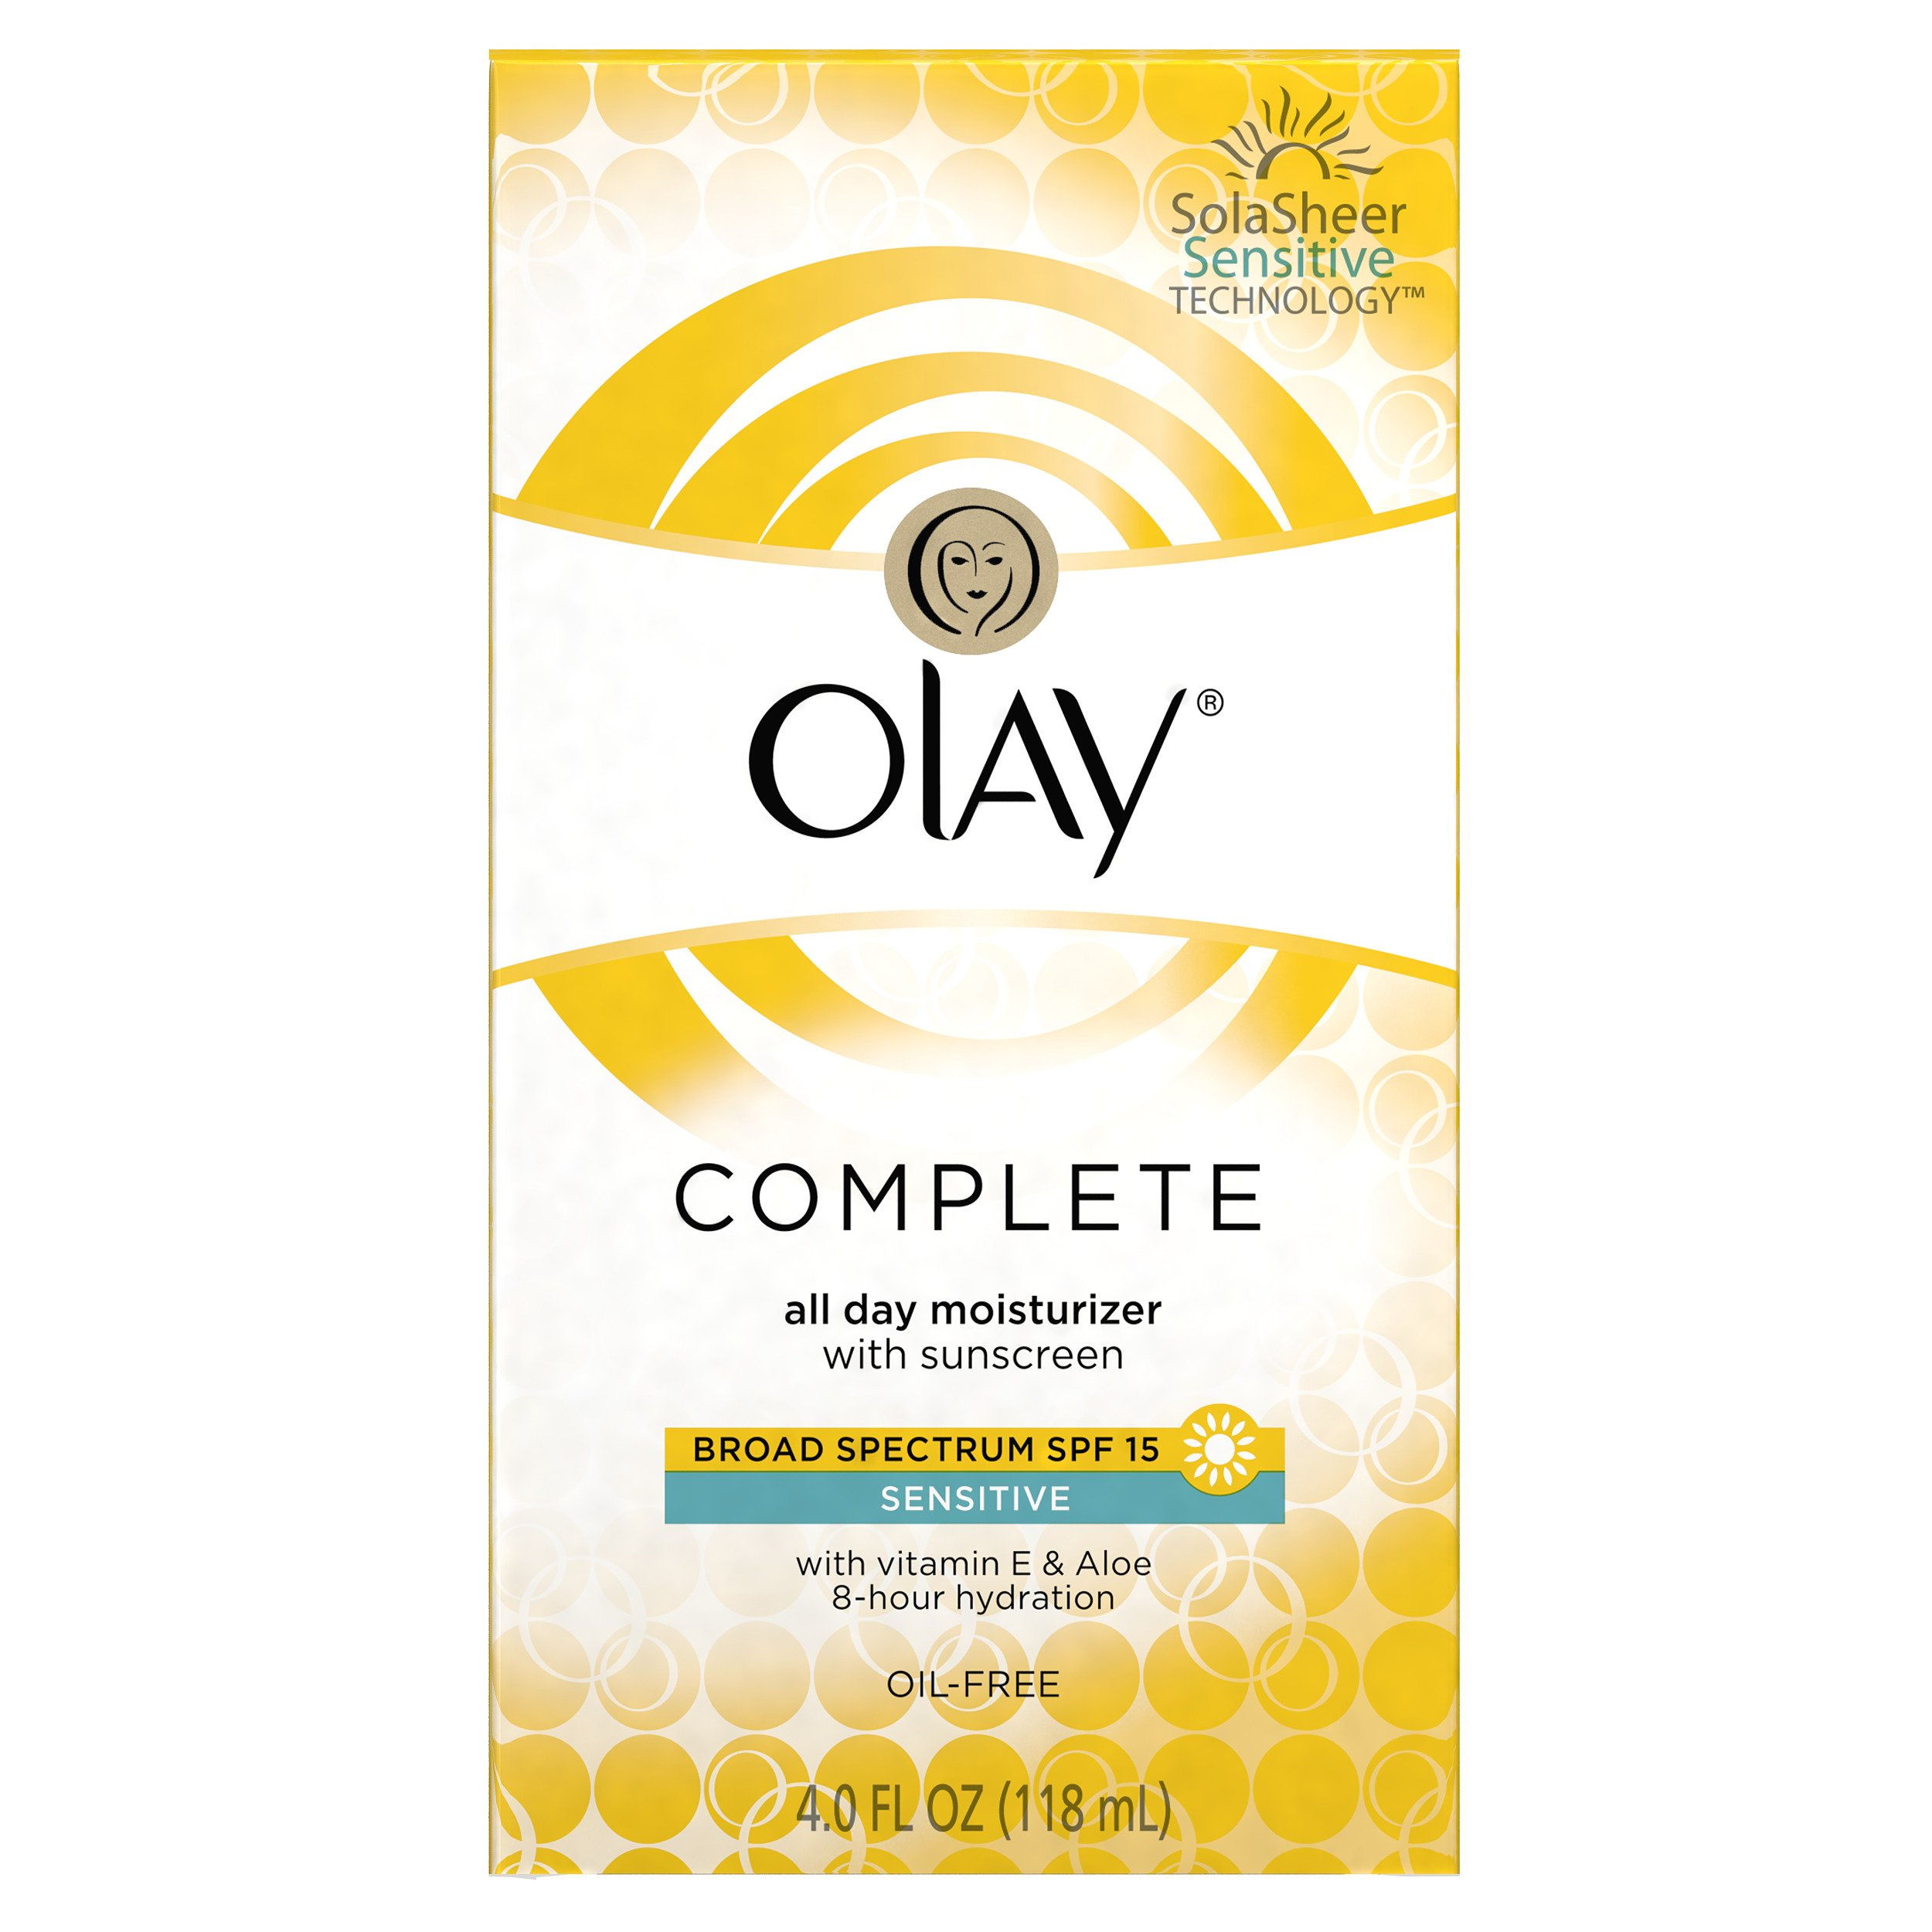 Olay Complete All Day Moisturizer With Sunscreen Broad Spectrum SPF 15 - Sensitive, 4 fl. Oz